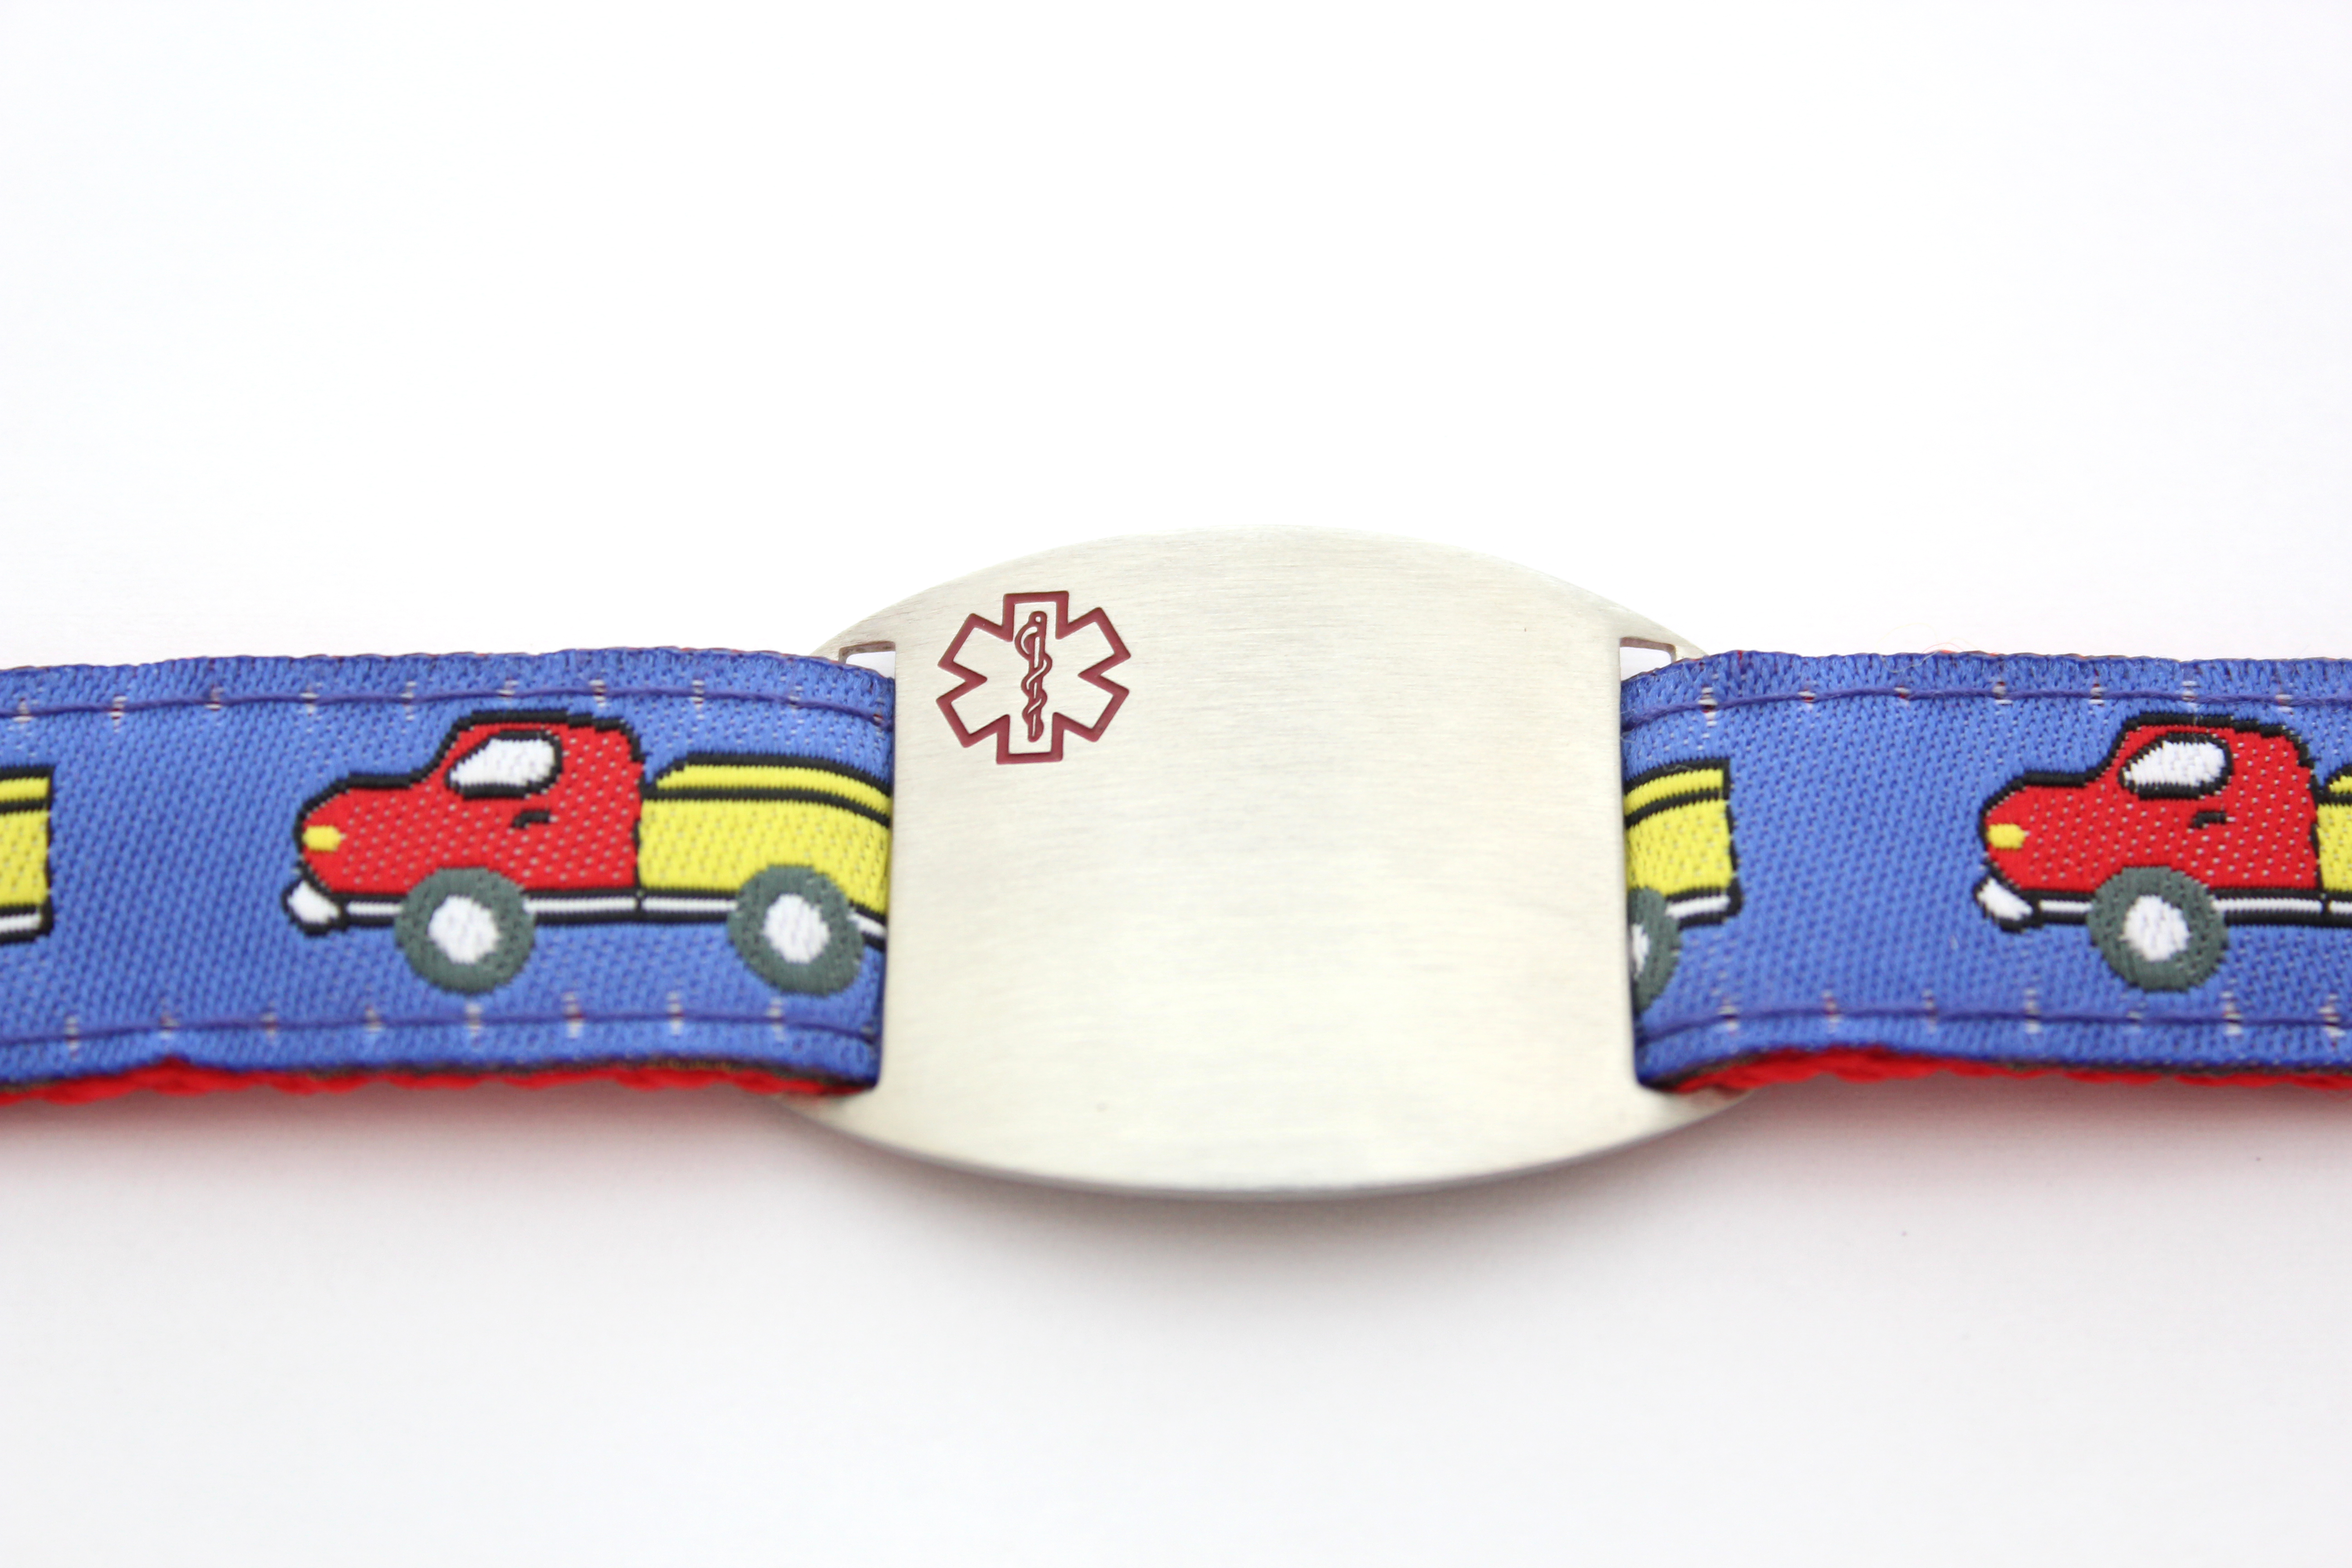 Keep Truckin' - Children's Sports Band Bracelet - Medical ID